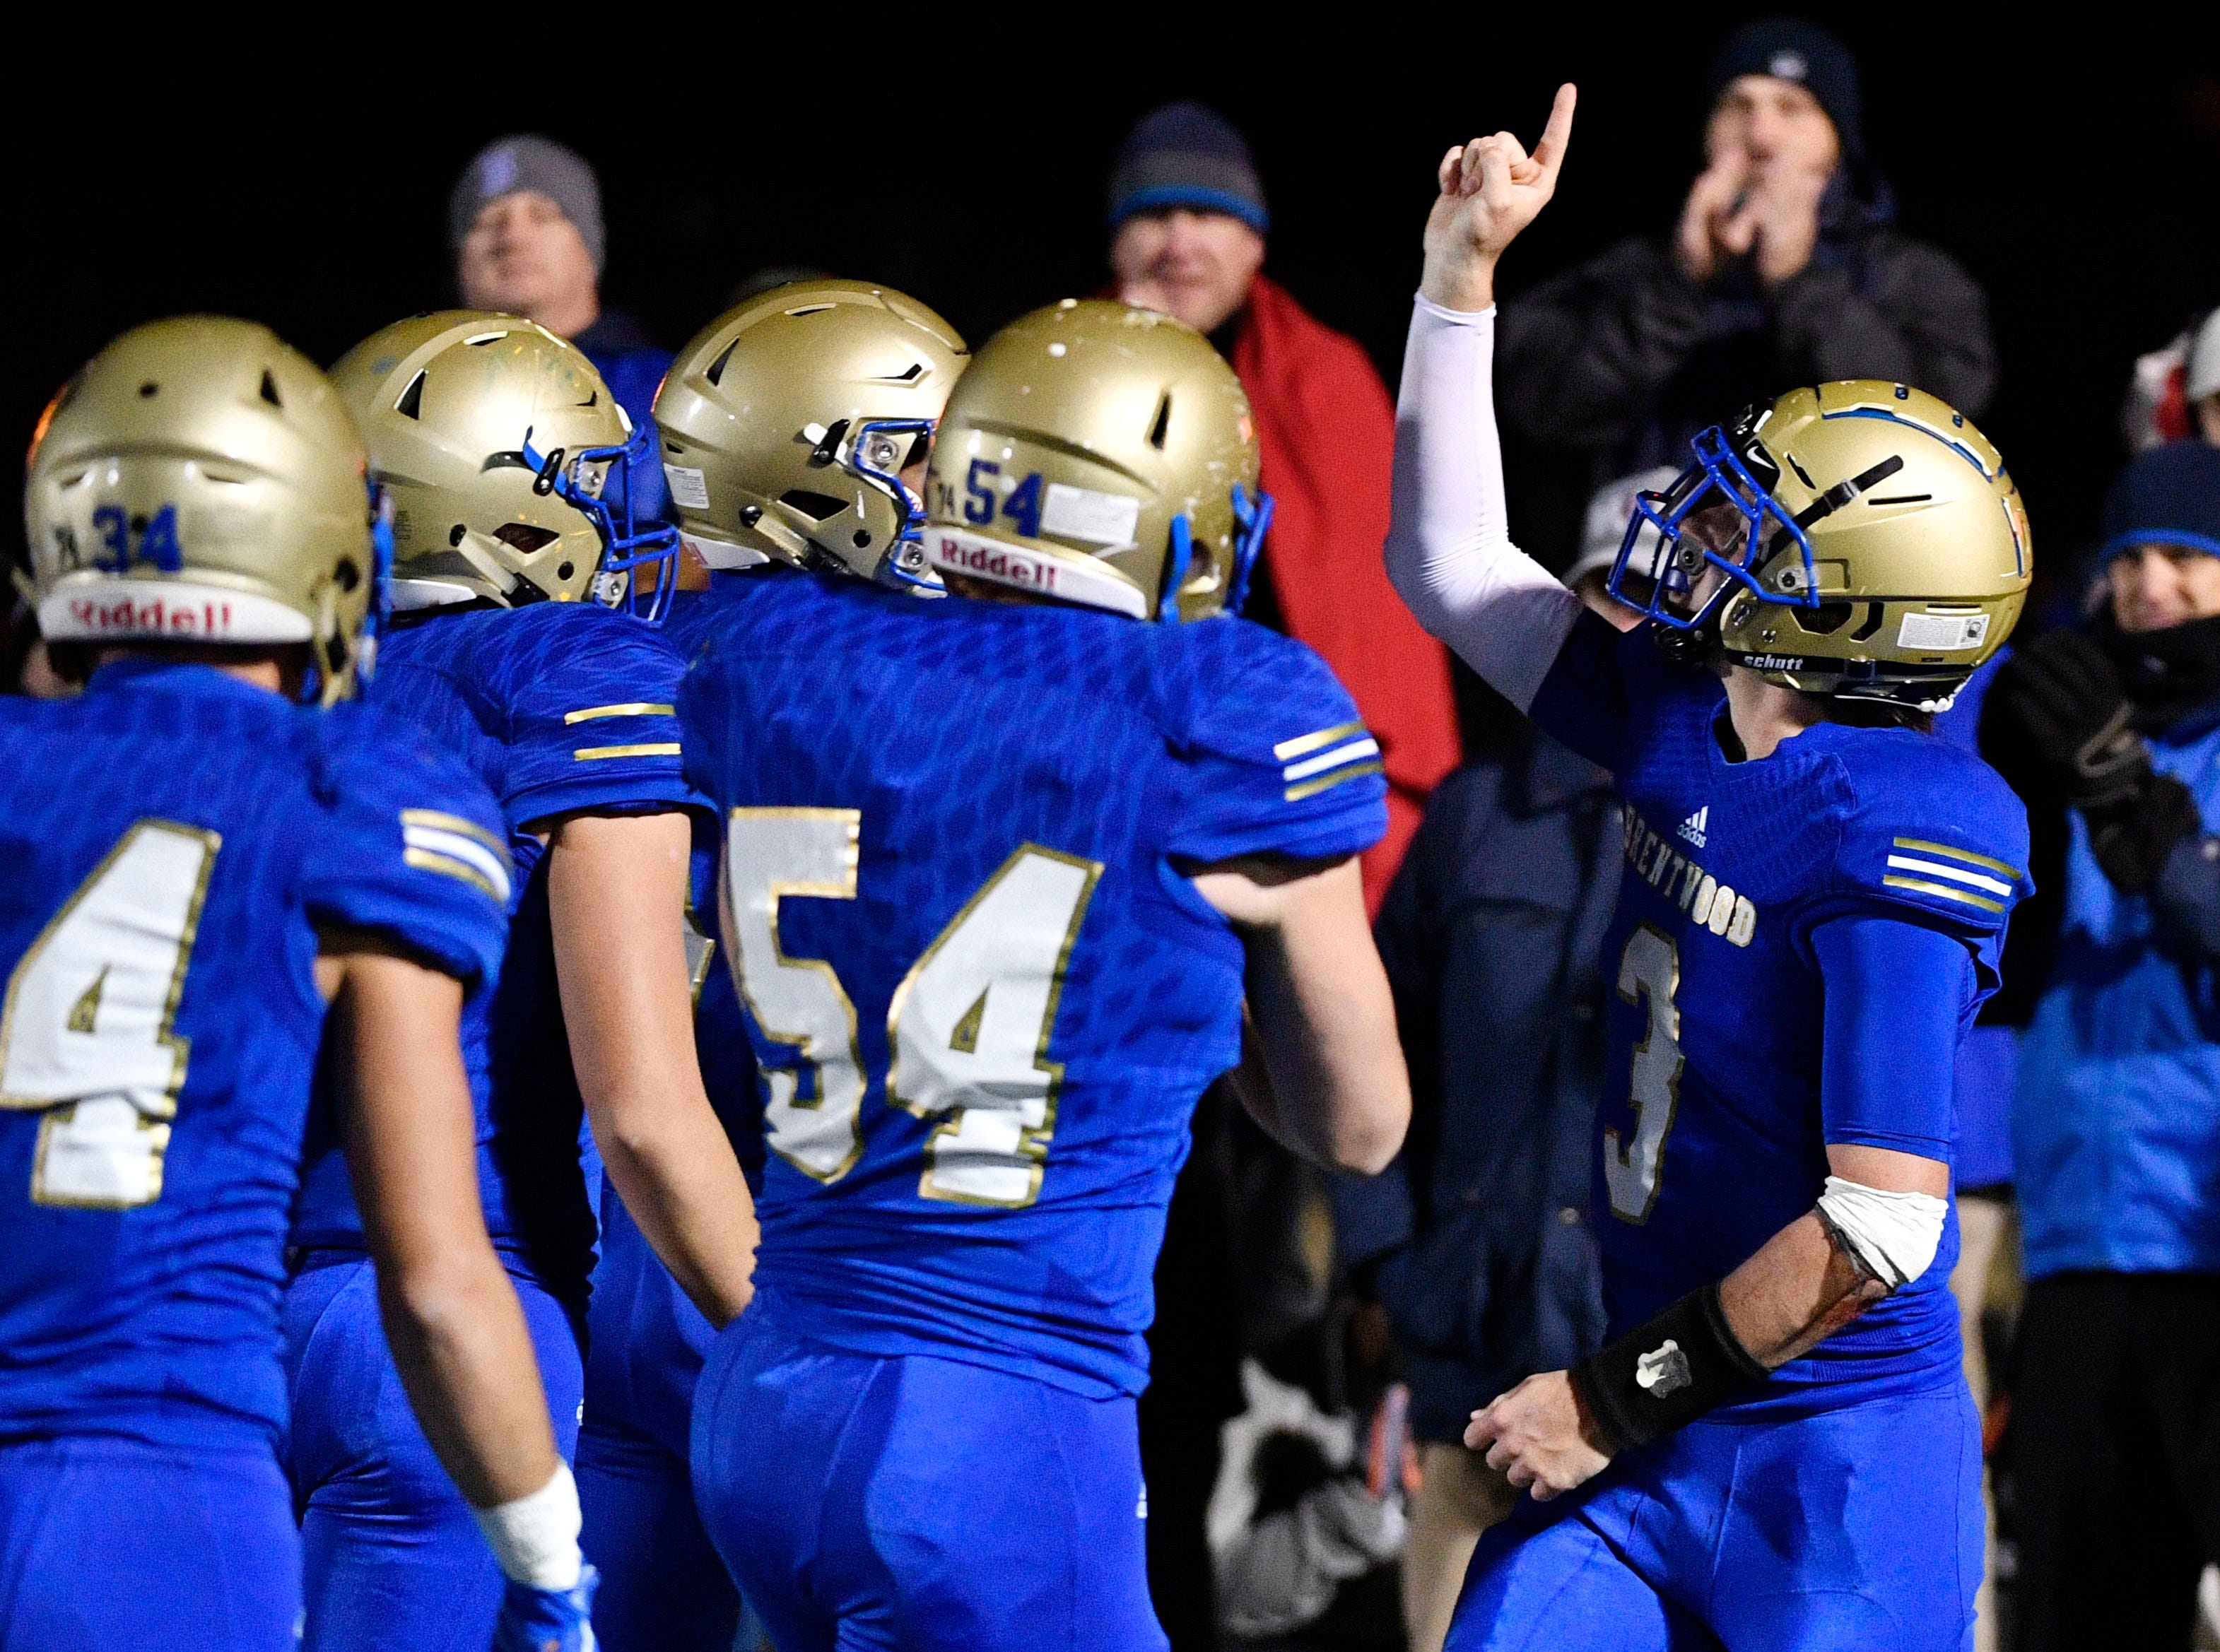 Brentwood defeats Independence 27-24 in the Class 6A second round